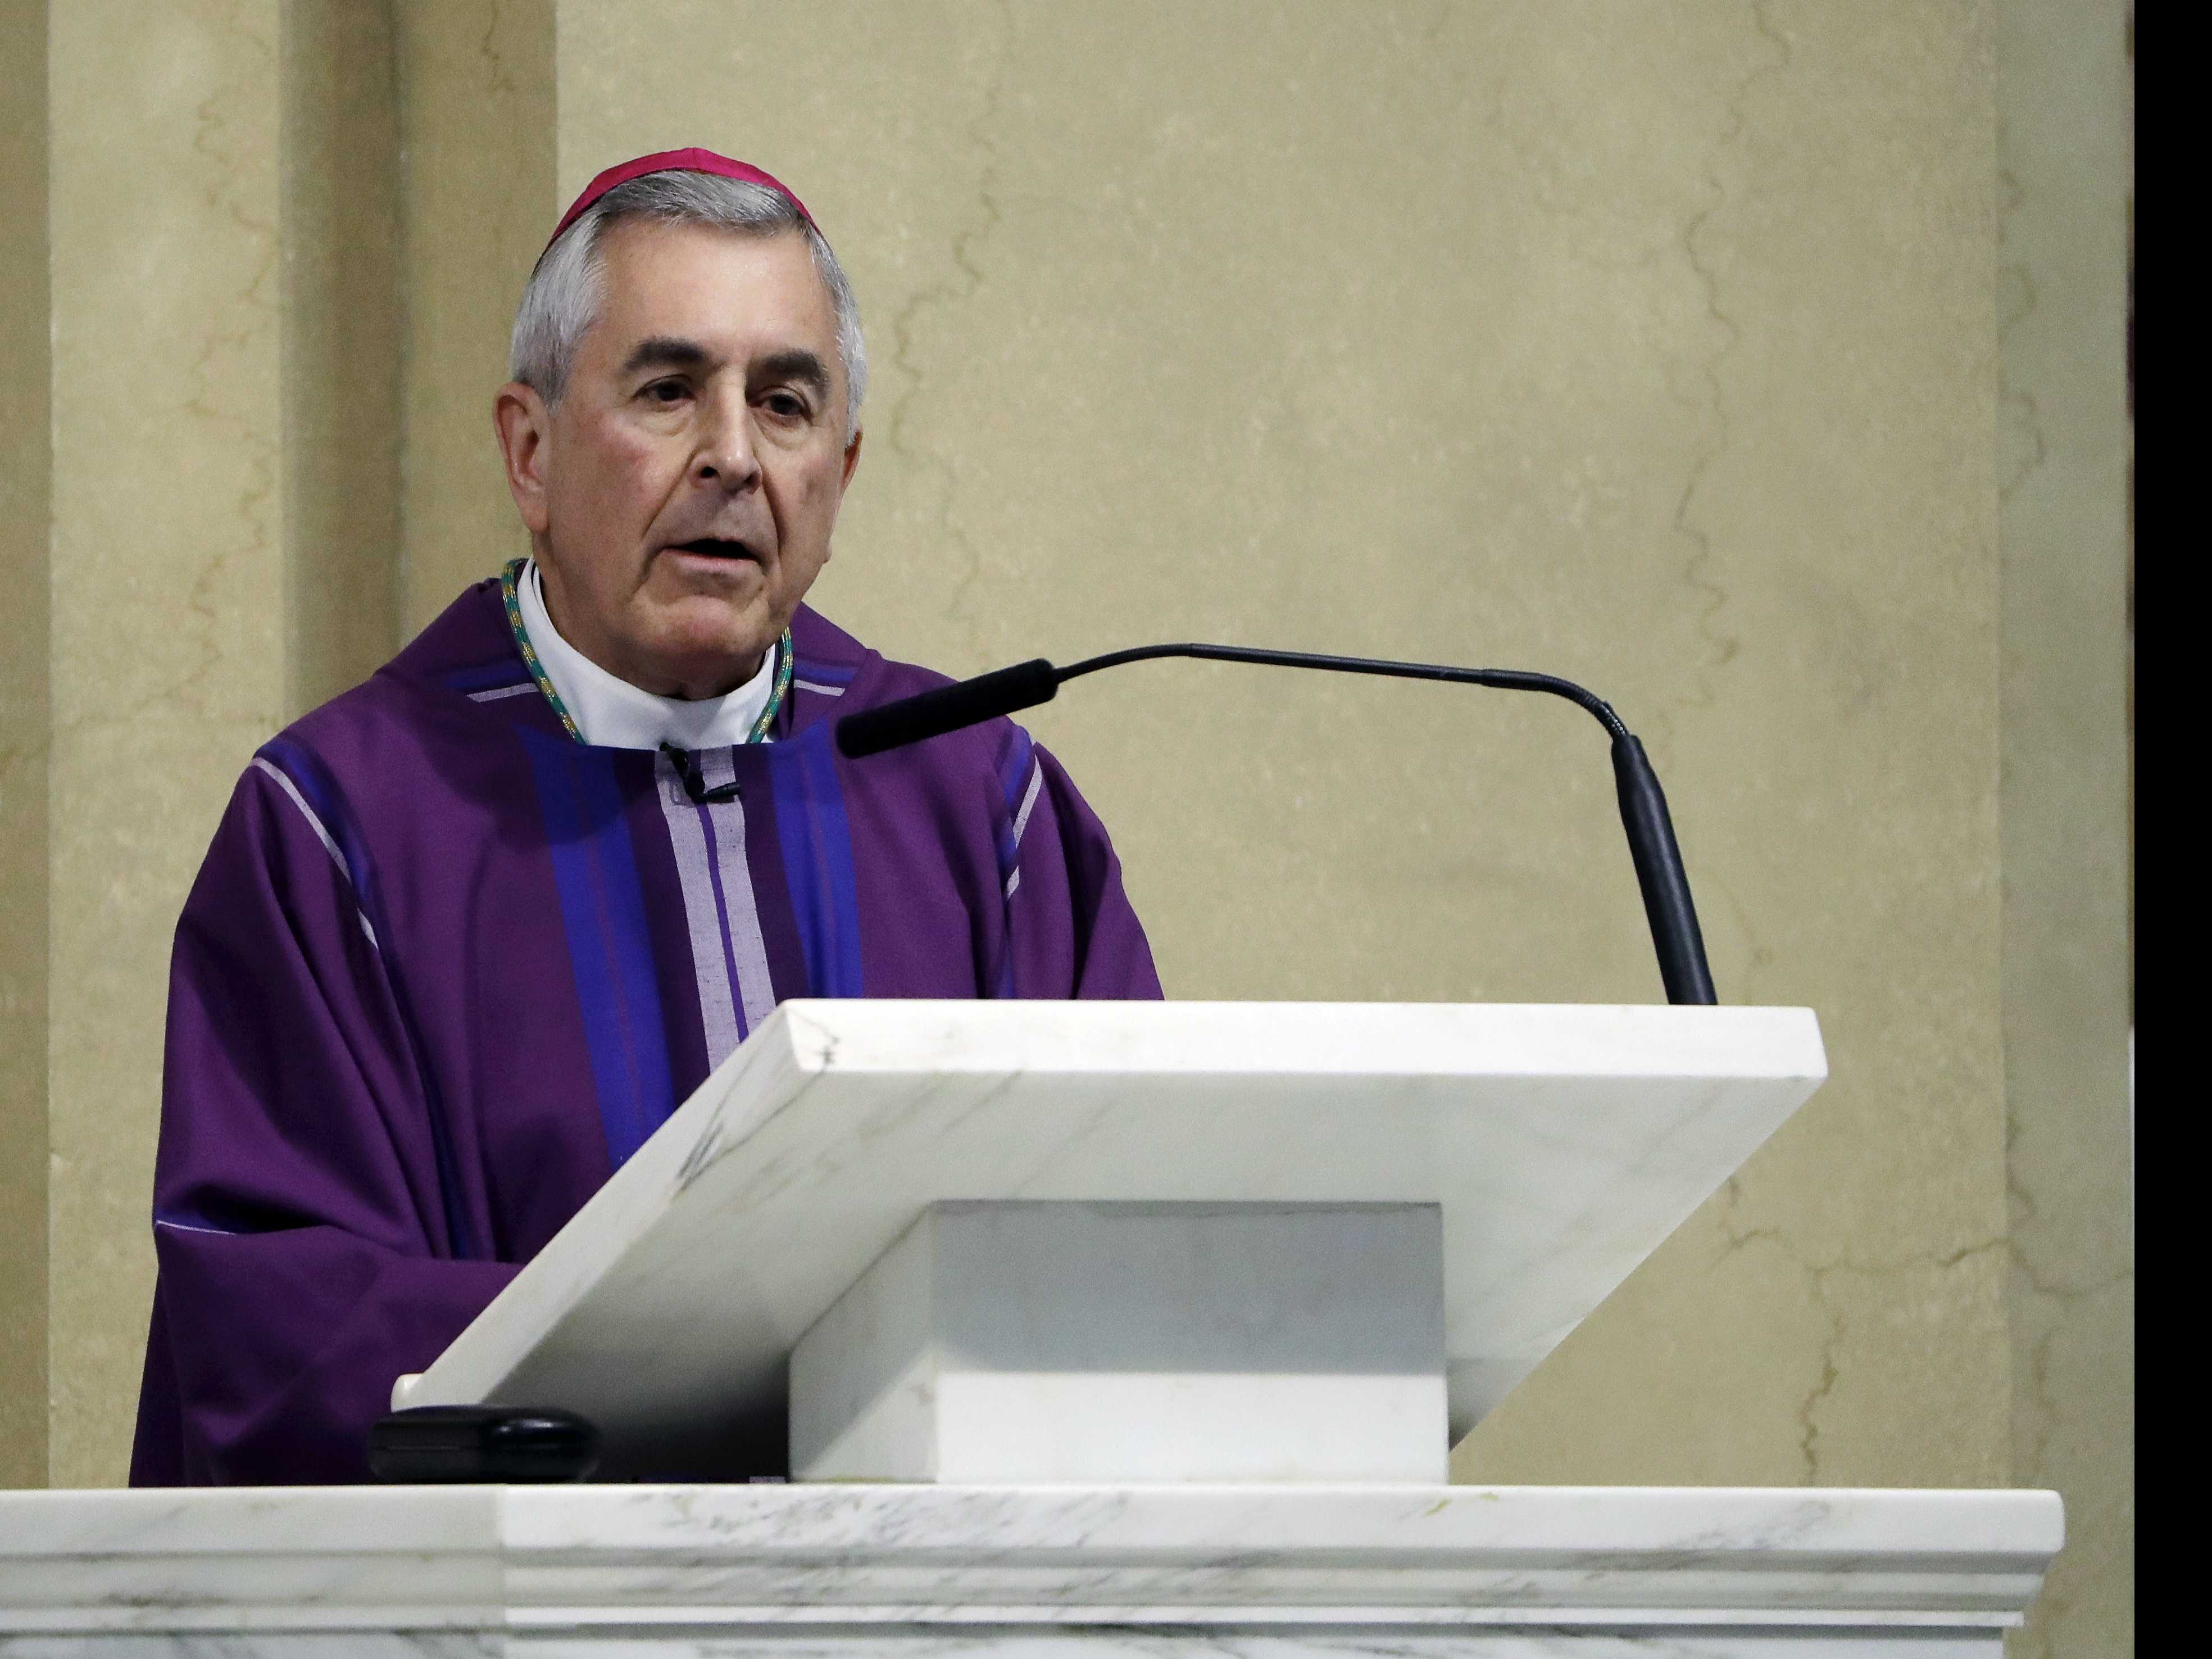 Bishop: I Have 'Profound Remorse' After Sex Abuse Report